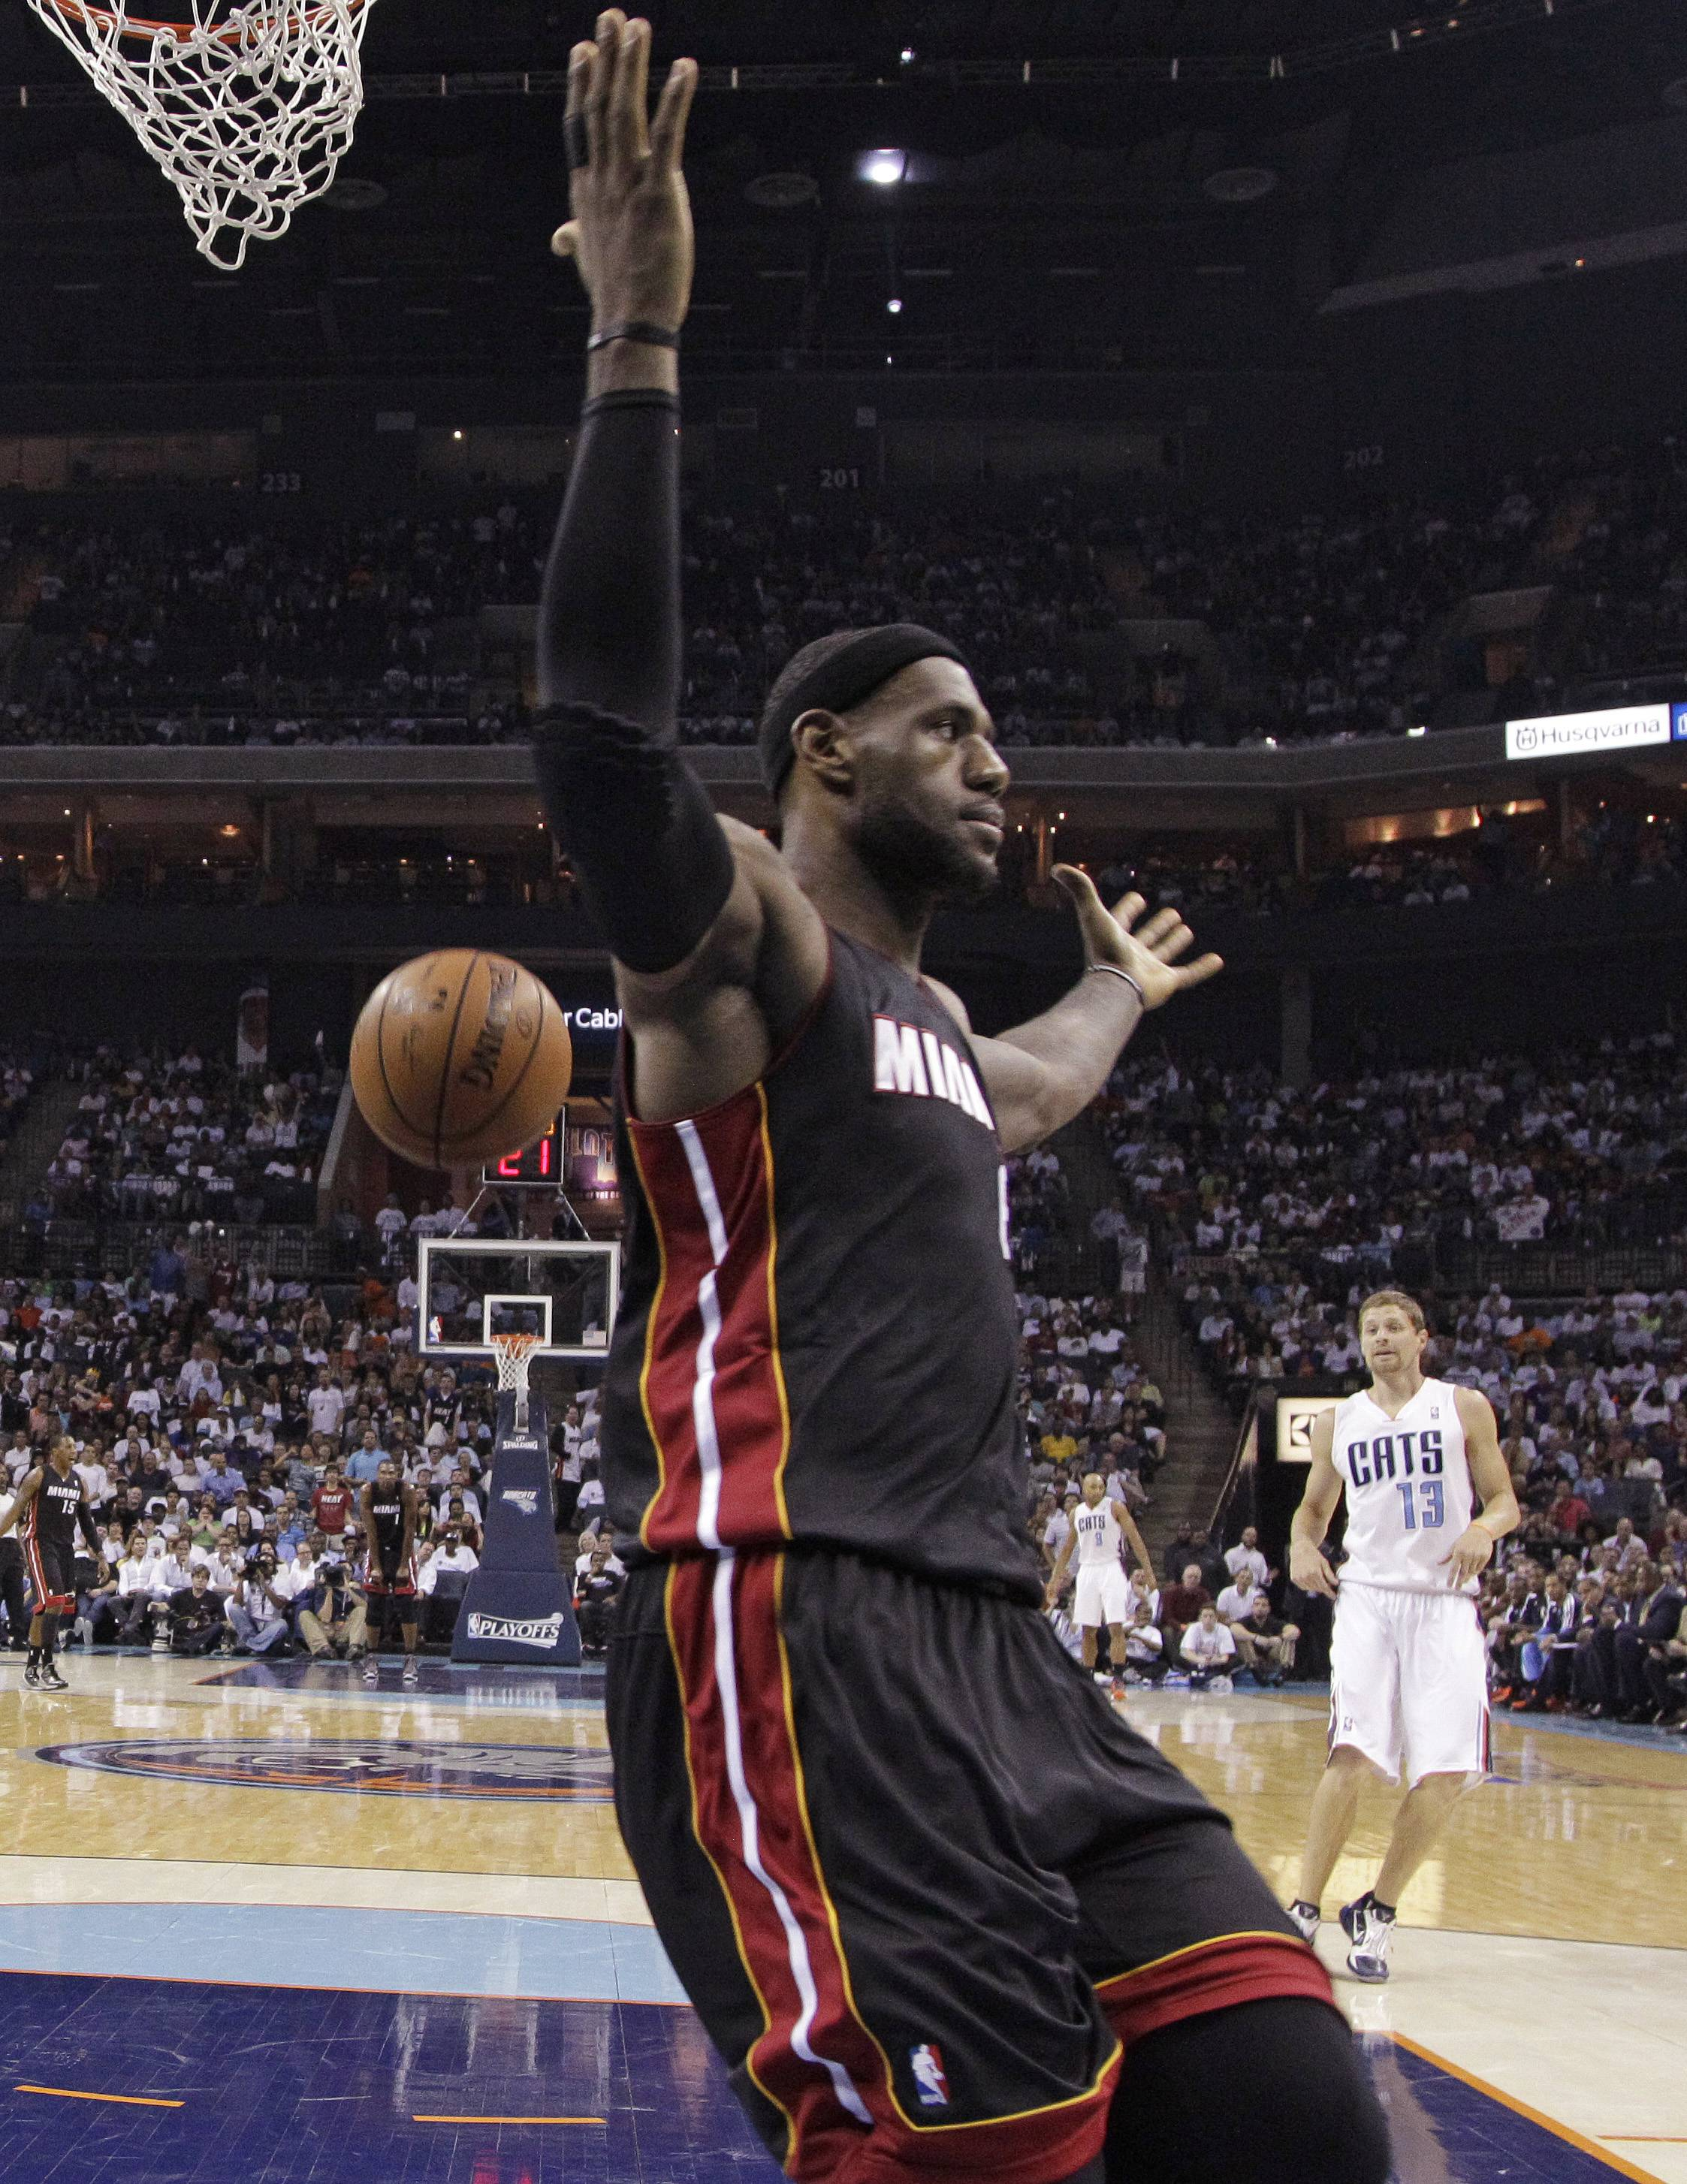 Miami Heat's LeBron James gestures after dunking against the Charlotte Bobcats during the first half.